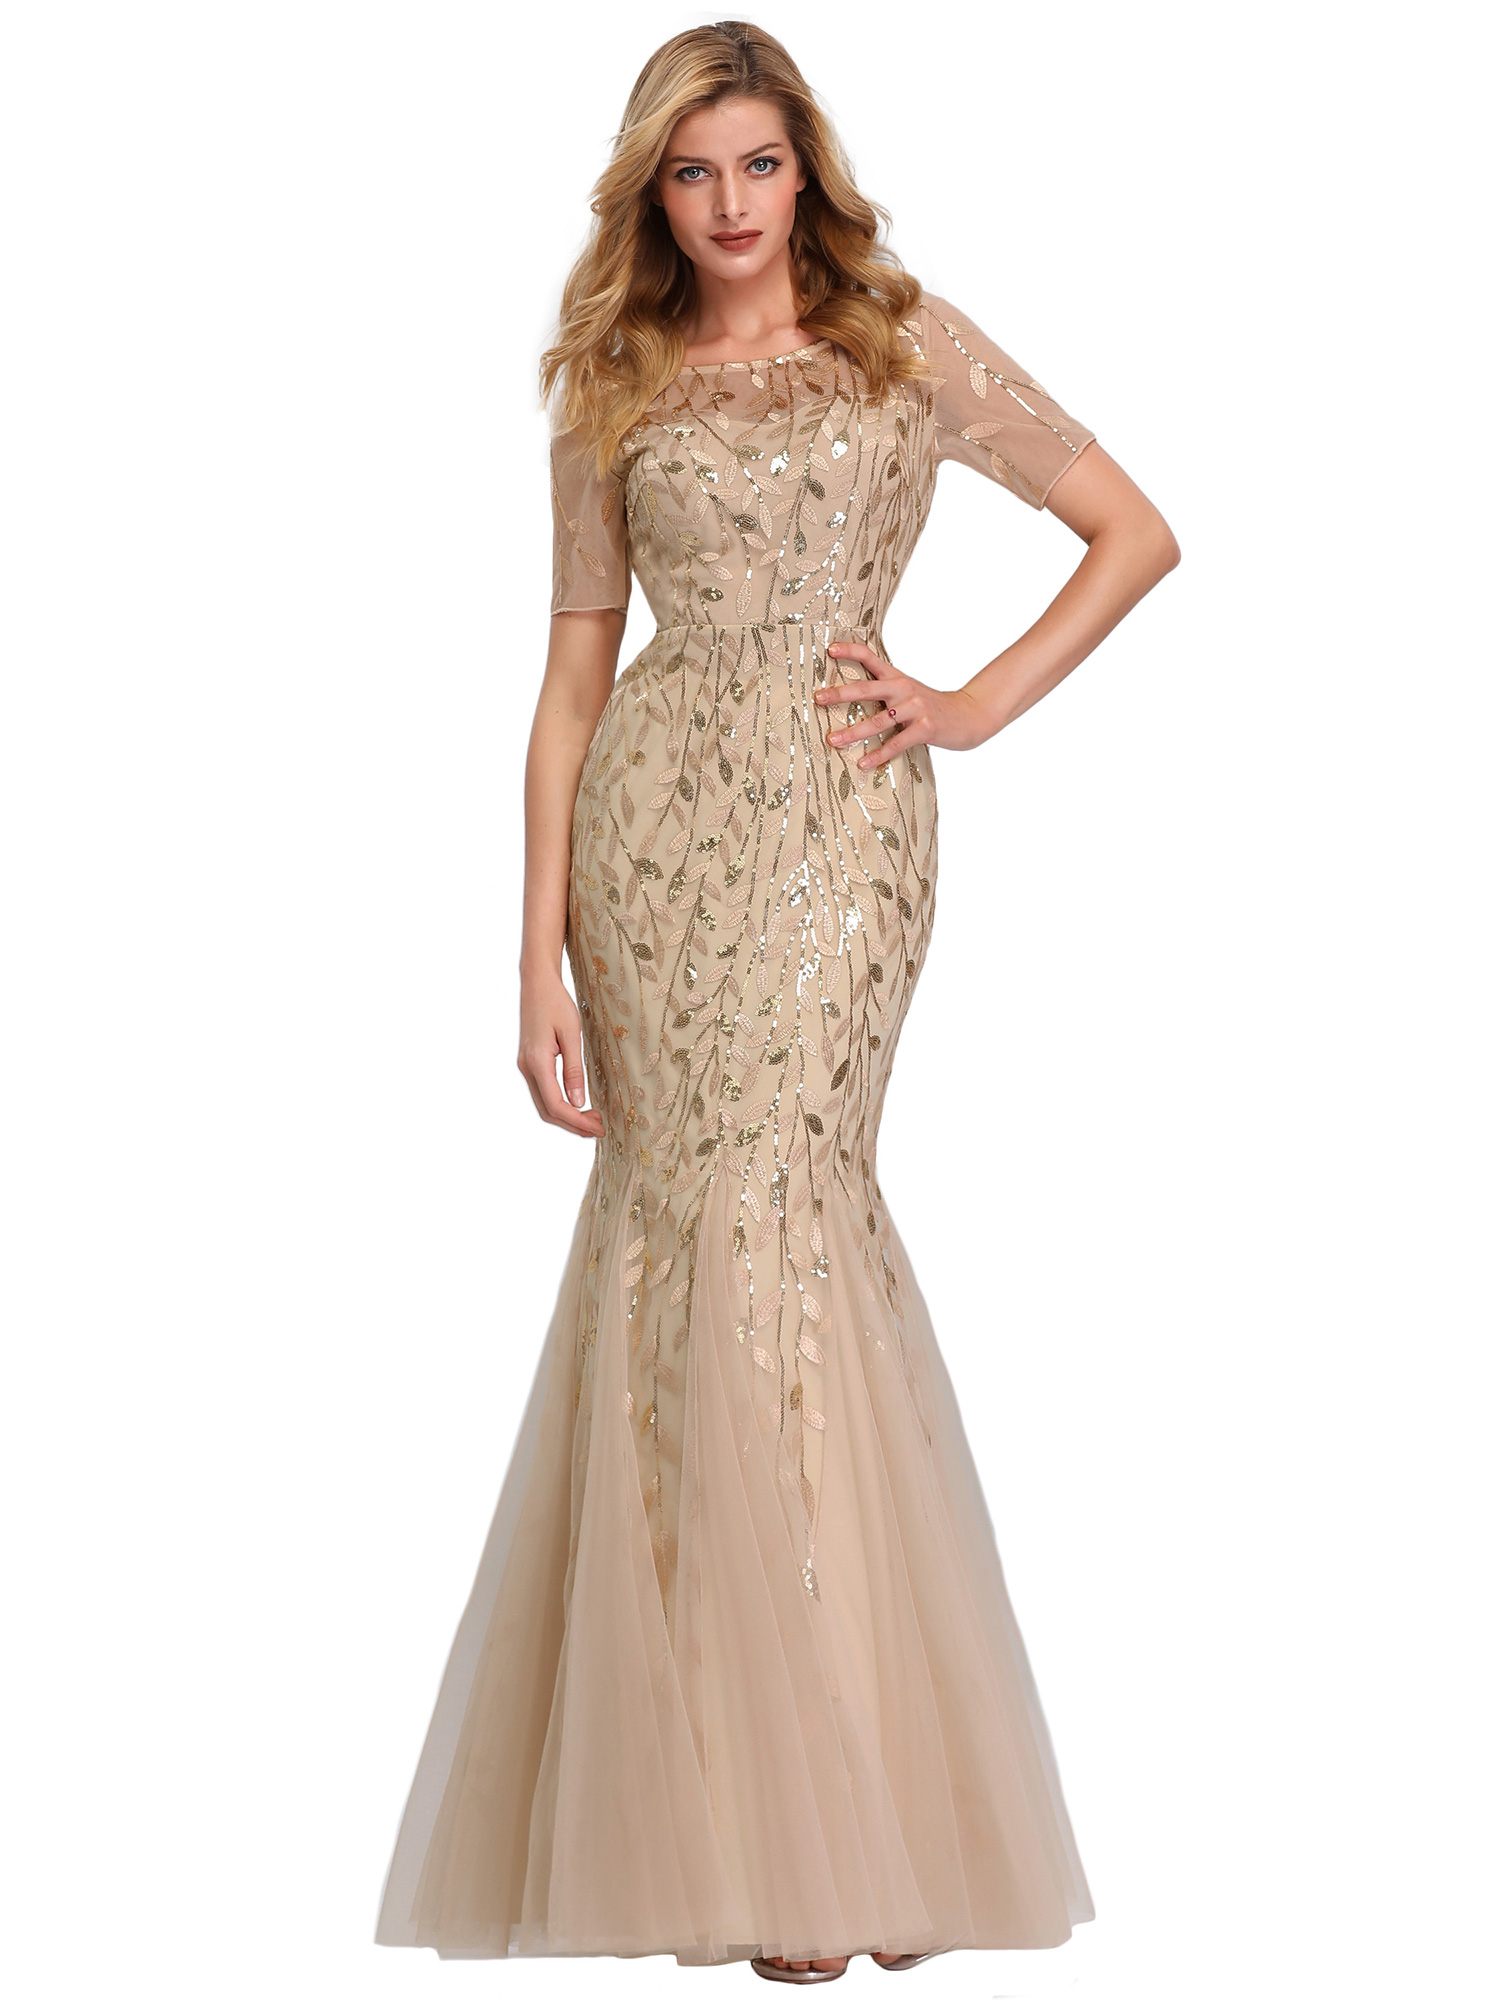 Ever-pretty-Plus-Size-Sequins-Bridesmaid-Dresses-Mermaid-Evening-Party-Prom-Gown thumbnail 30